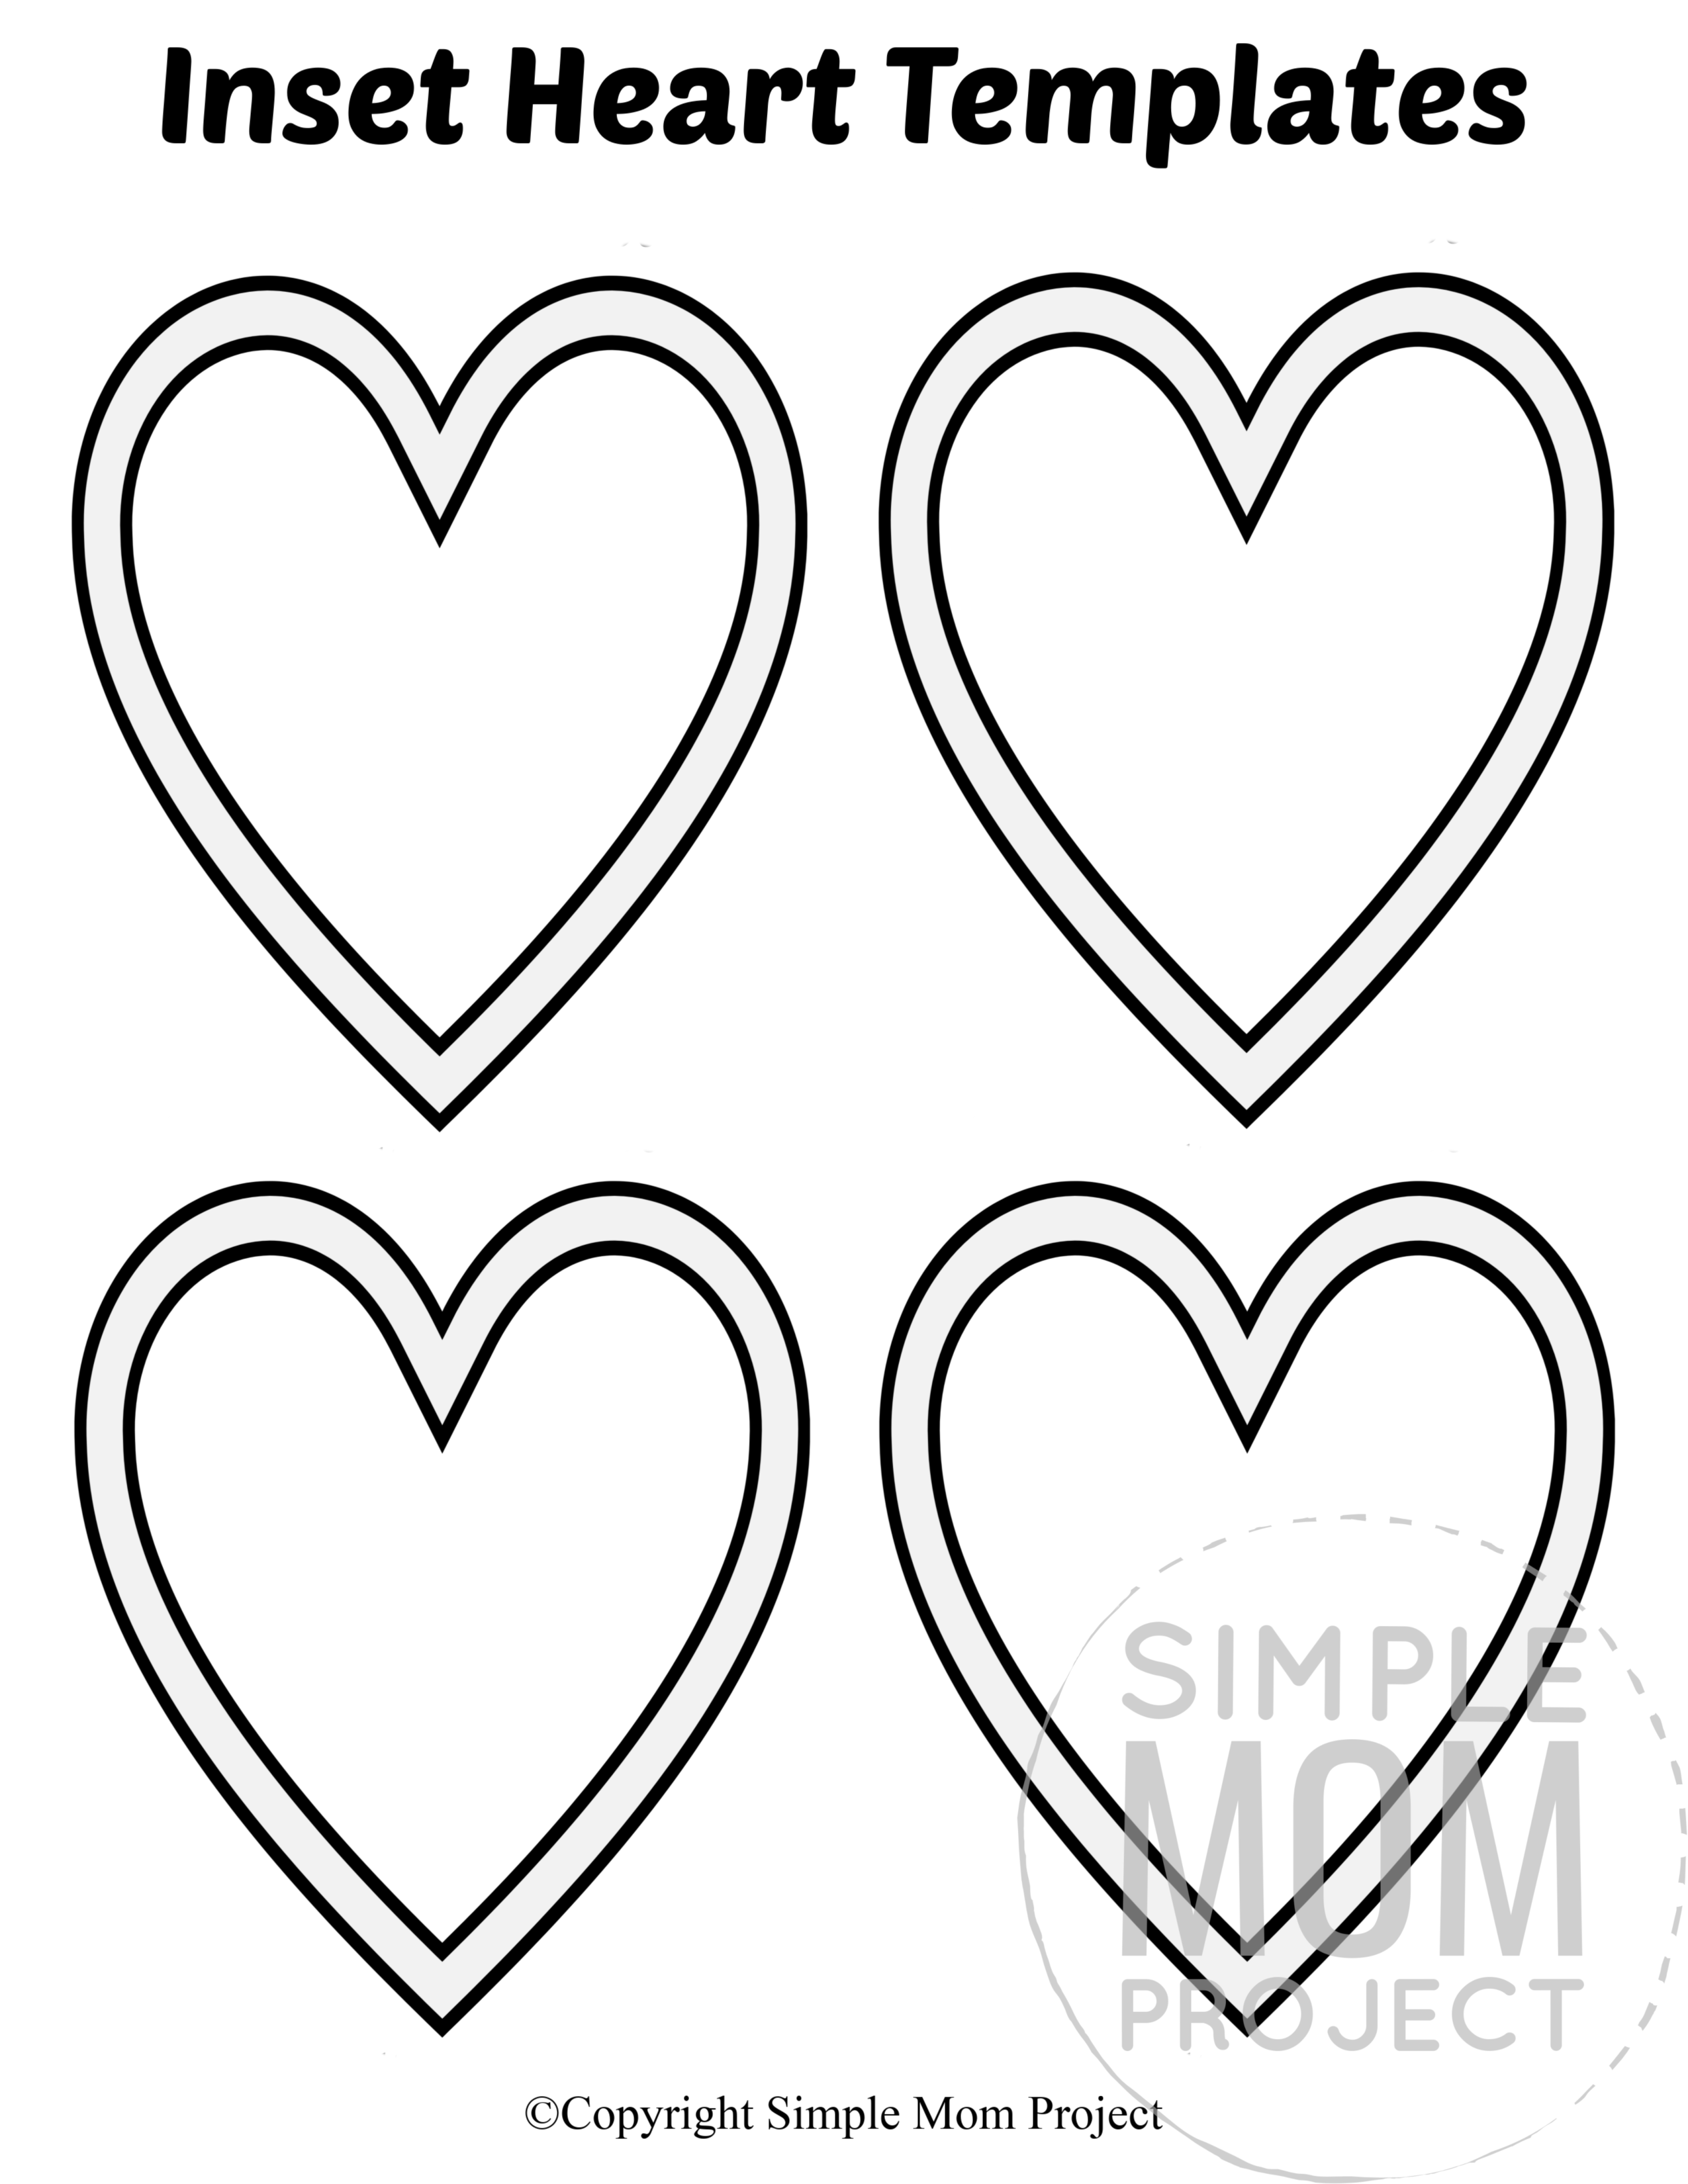 Inset Small Heart Shaped Template Full Page Cutout outline stencil